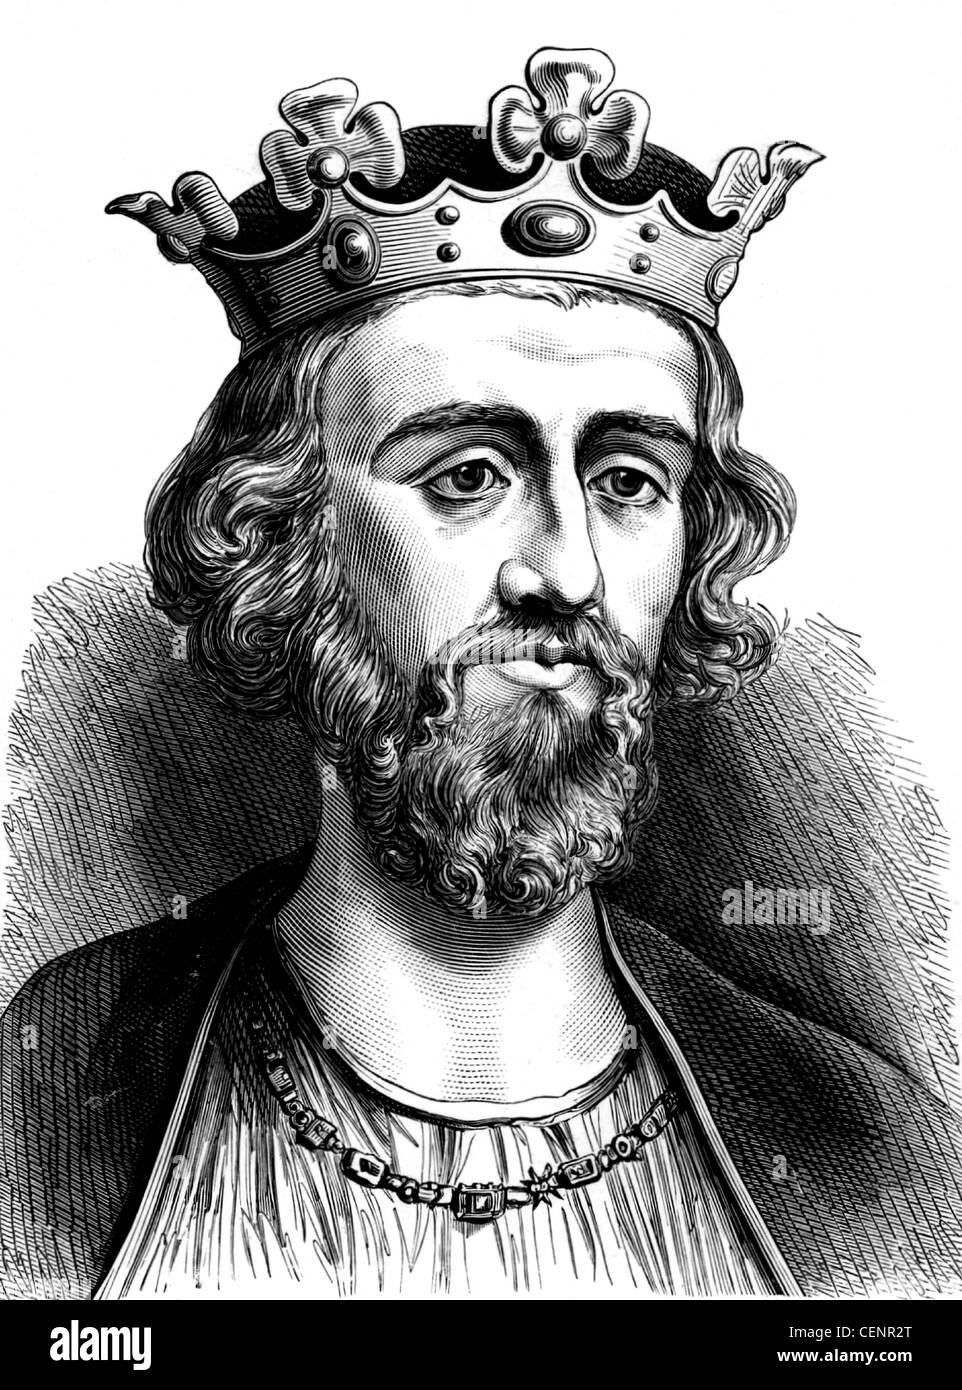 Edward II (1284-1327) king of England from 1307, Wood engraving end of XIX th century - London - Stock Image